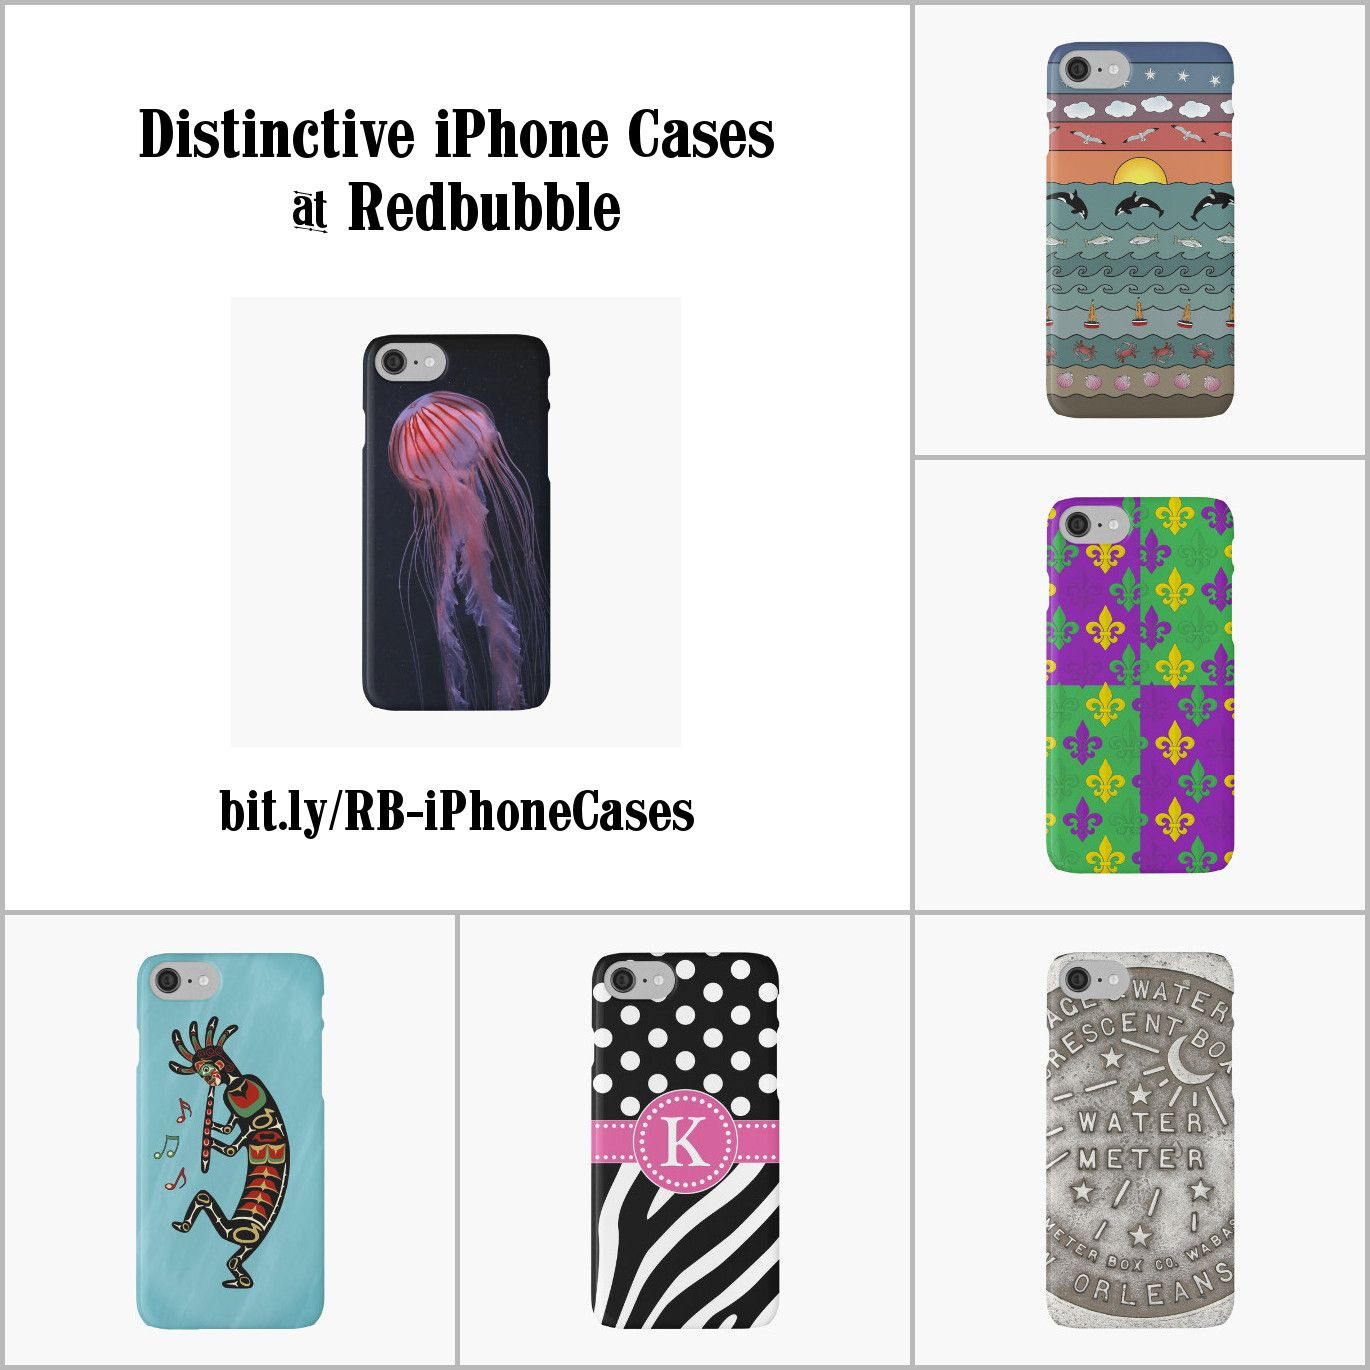 25% OFF iPhone Cases at Redbubble through 08 Dec 2016 with code SWEETGIFT. https://www.redbubble.com/people/debidalio/shop/iphone-cases #phonecases #pattern #monogram #photography #illustration #StudioDalio